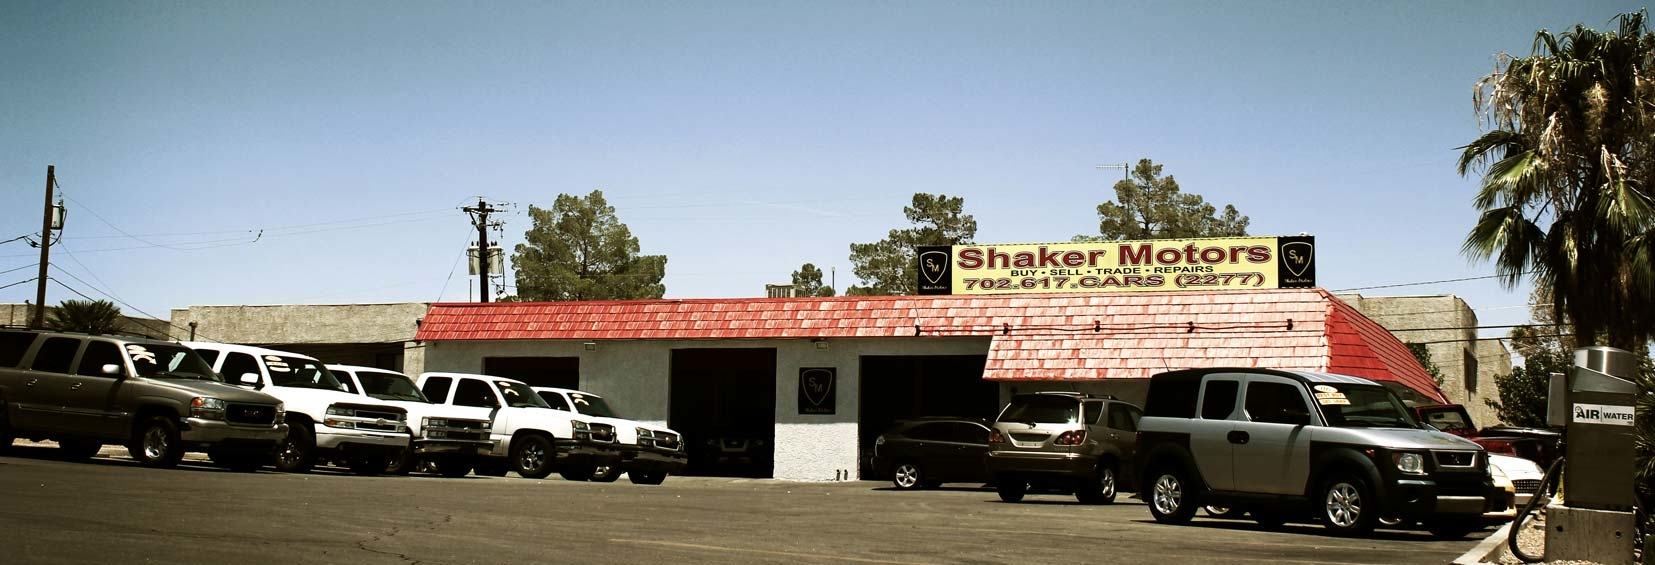 Sunrise Auto Sales Las Vegas >> Trucks - Dealers - Used in Las Vegas, NV | Las Vegas Nevada Trucks - Dealers - Used - iBegin